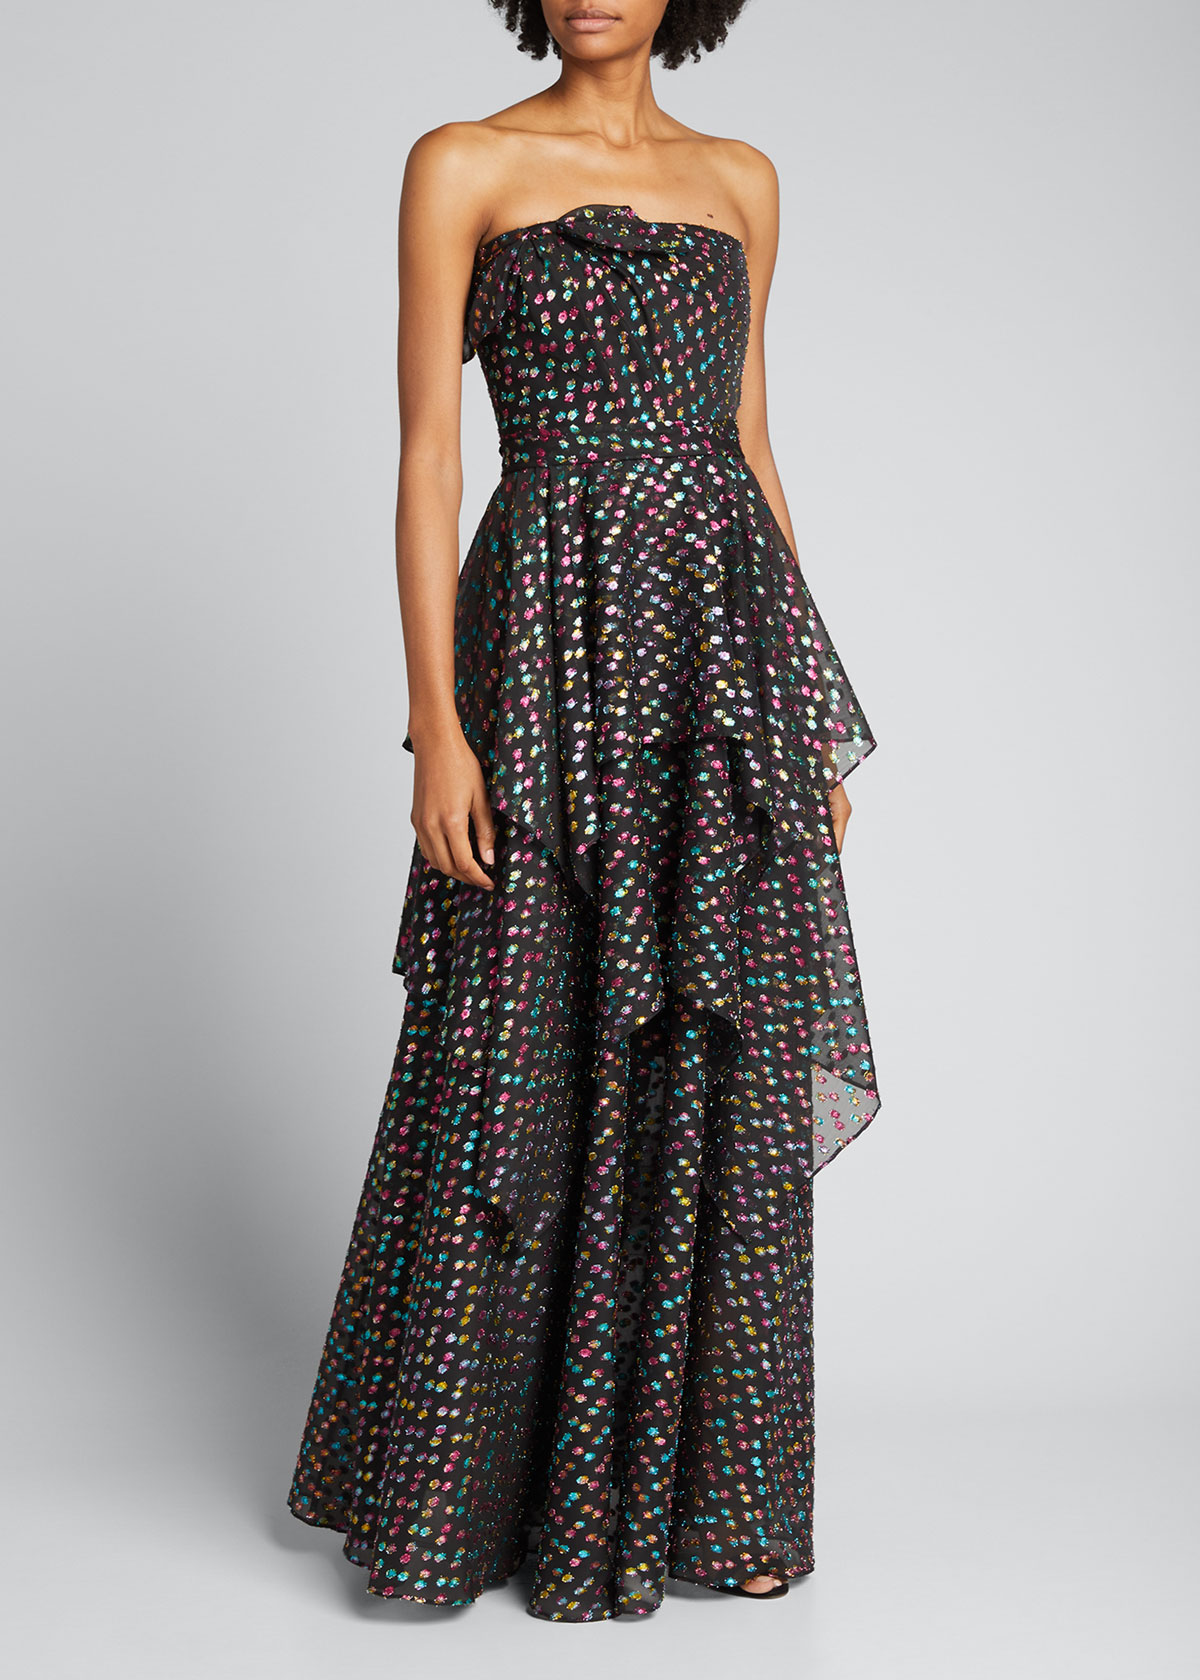 Marchesa Notte METALLIC DOT JACQUARD TIERED STRAPLESS A-LINE GOWN